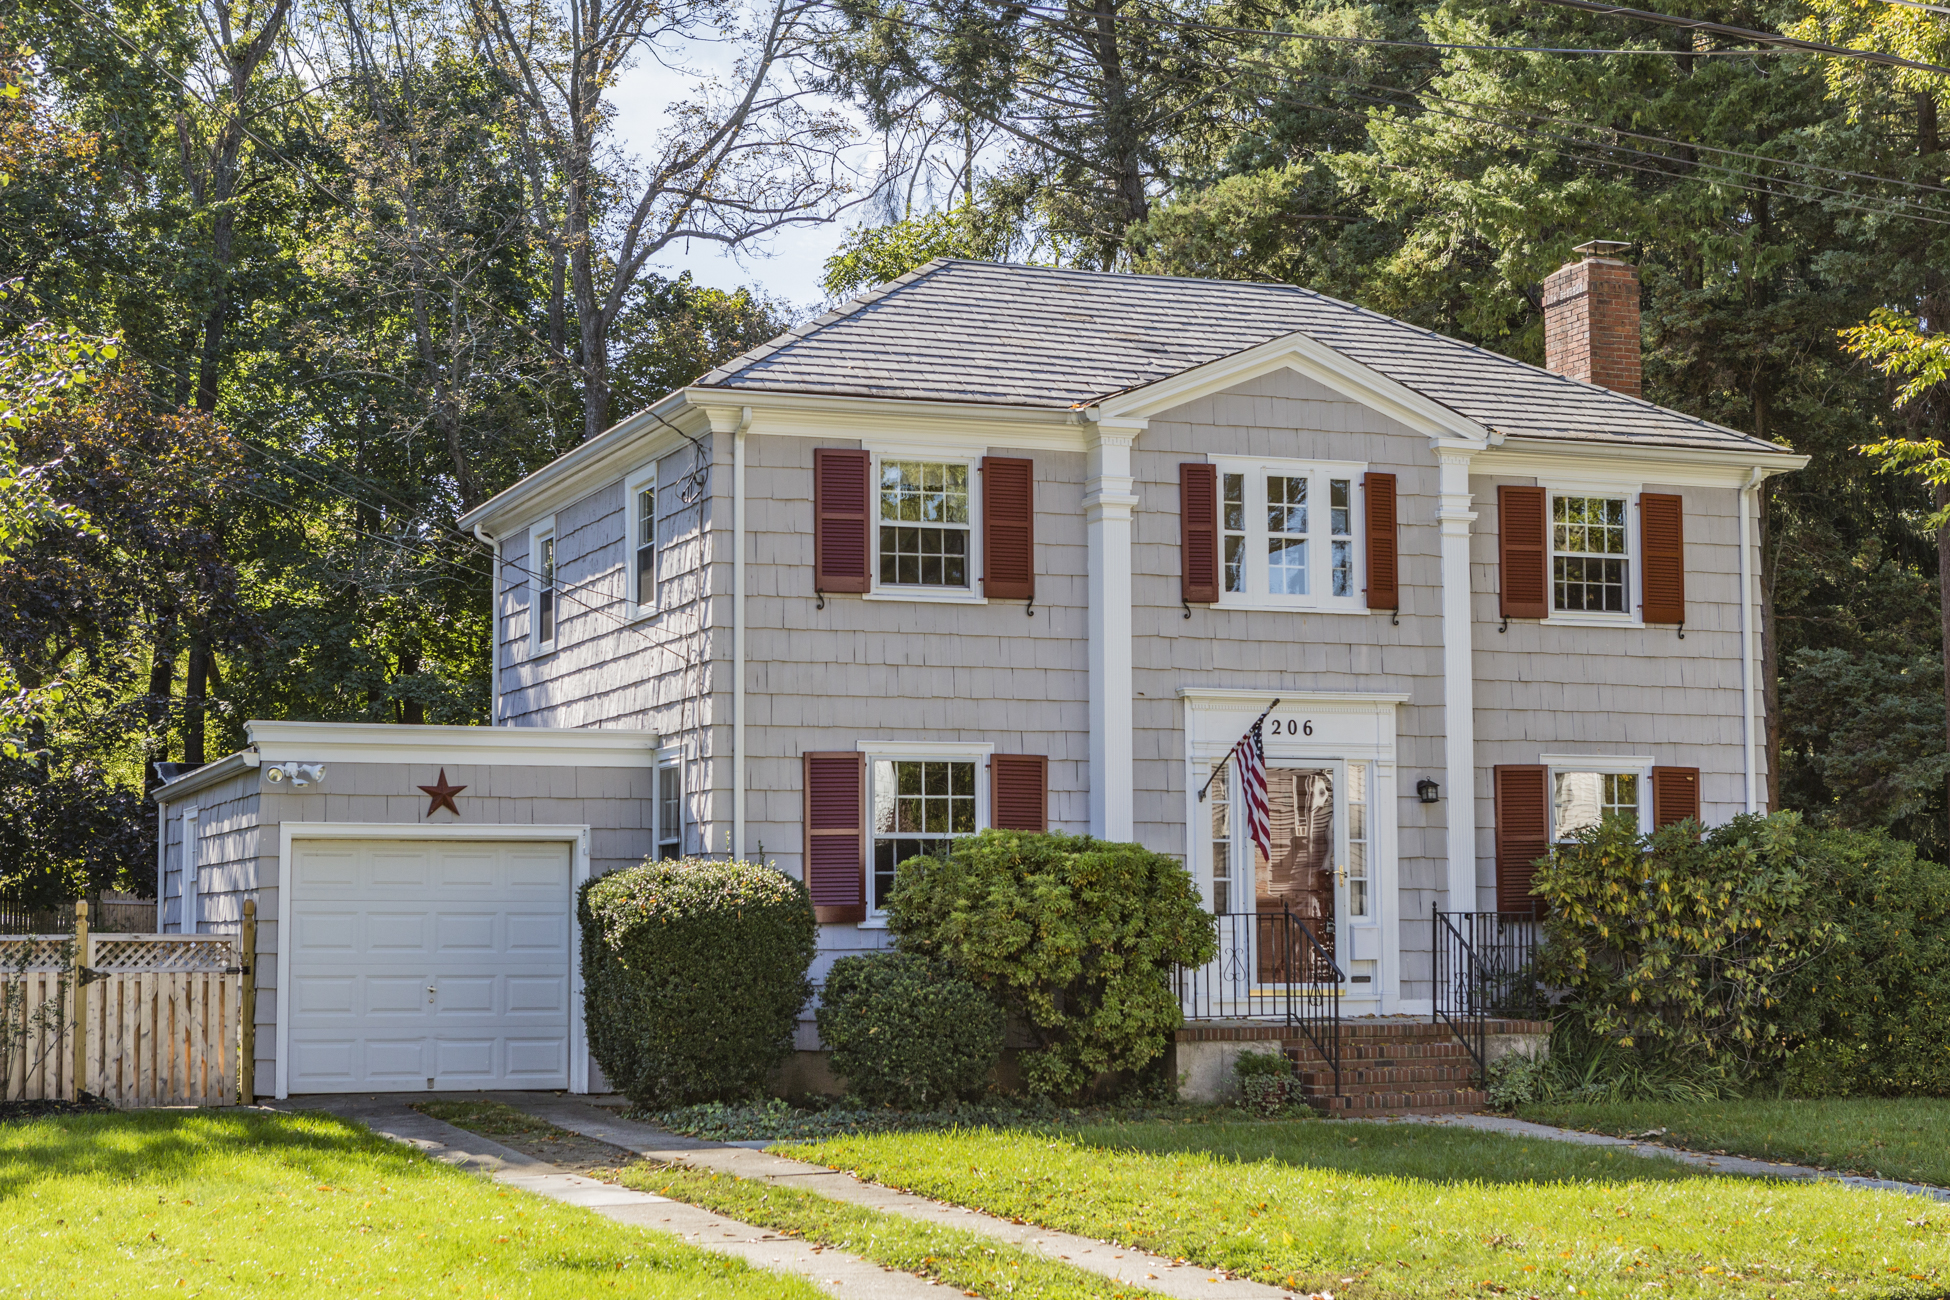 Single Family Home for Sale at Picture Perfect Classic 206 Pingree Avenue Ewing, New Jersey 08618 United States